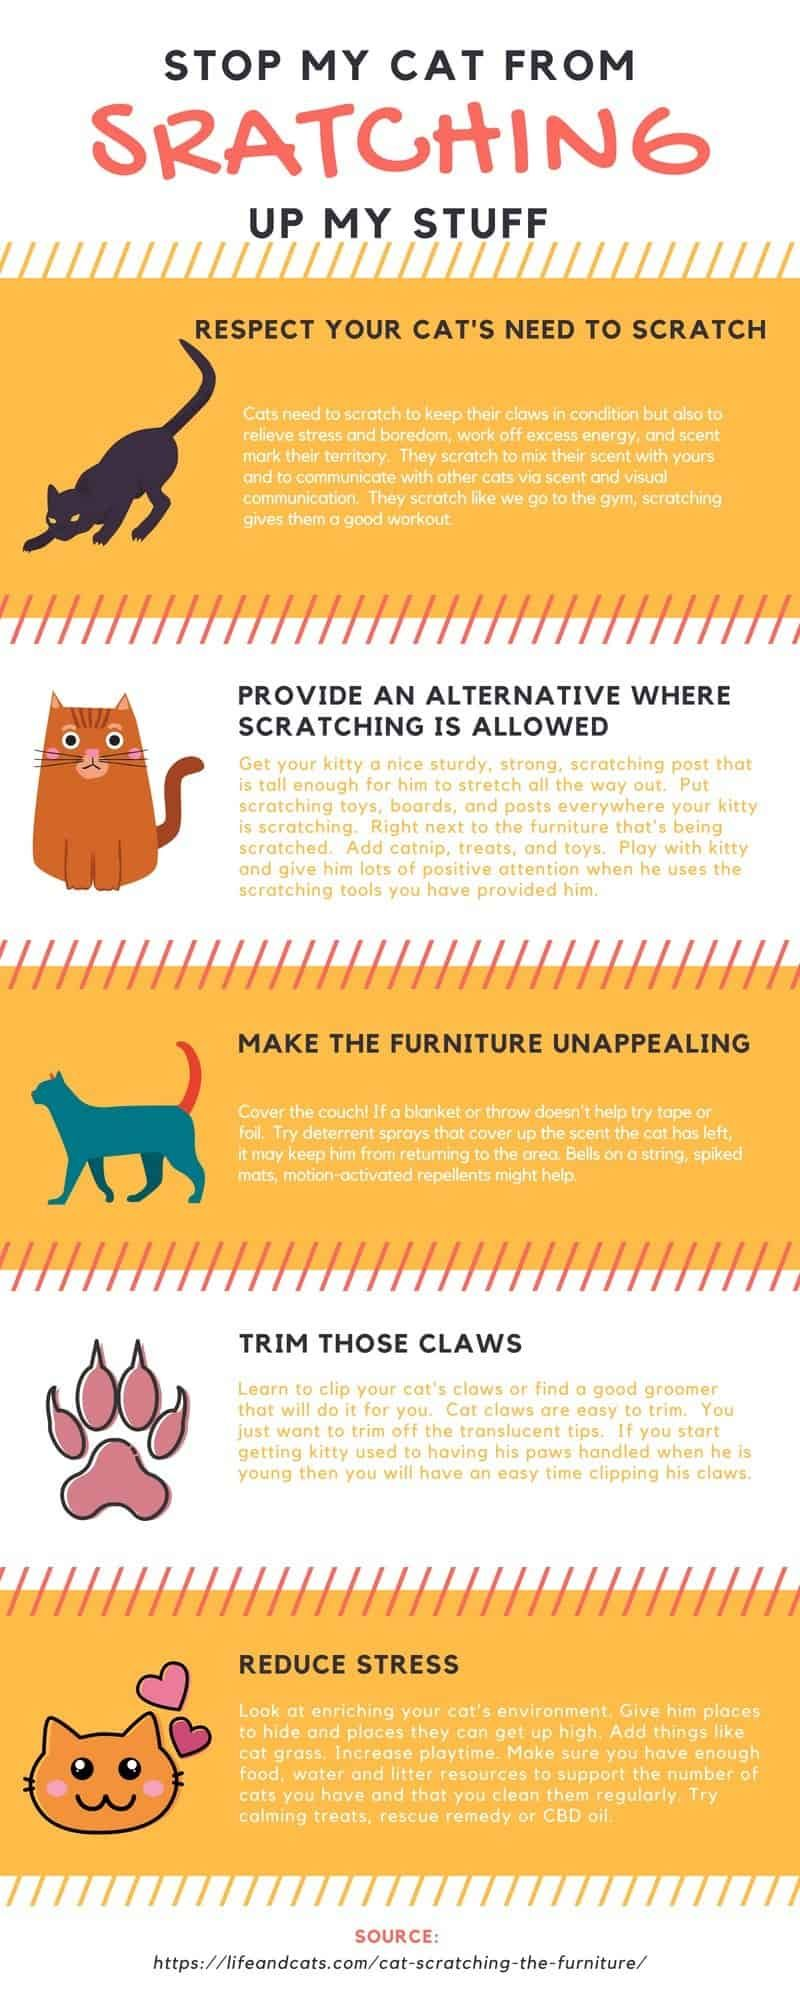 Help My Cat Is Scratching The Furniture What Can I Do Life Cats In 2020 Cat Training Scratching Cat Scratchers Cat Training